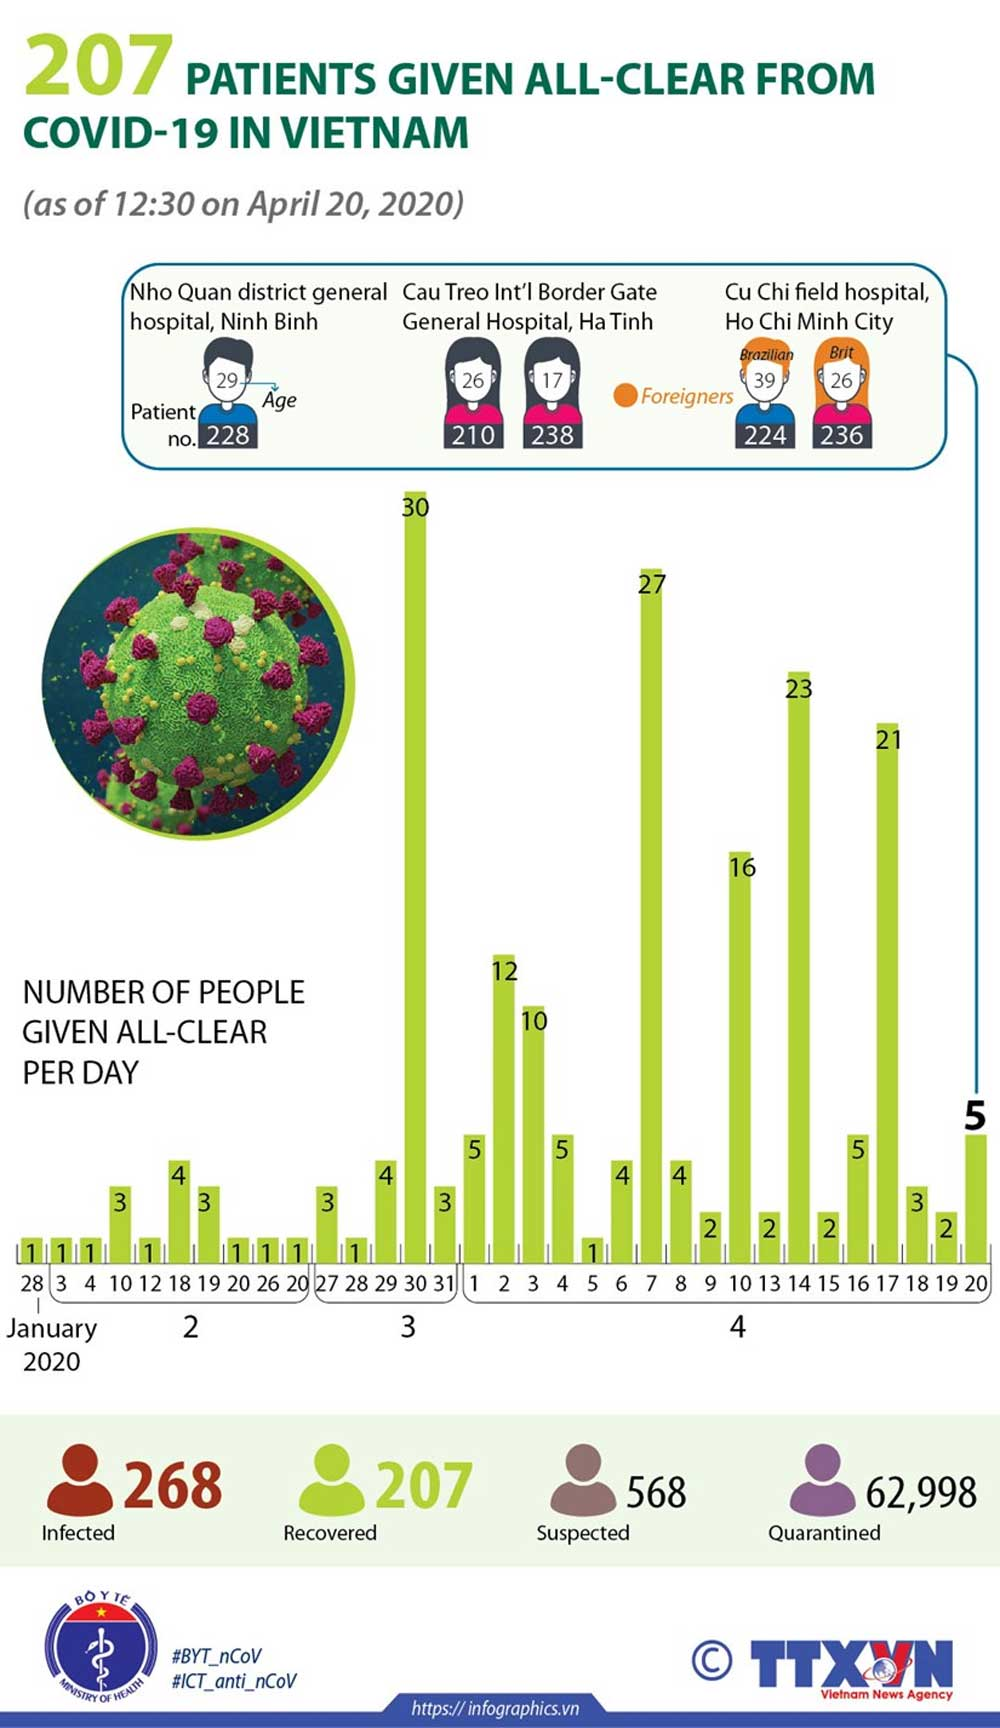 207 patients, all-clear, Covid-19 pandemic, Covid-19 patients, Vietnam, no new infected case